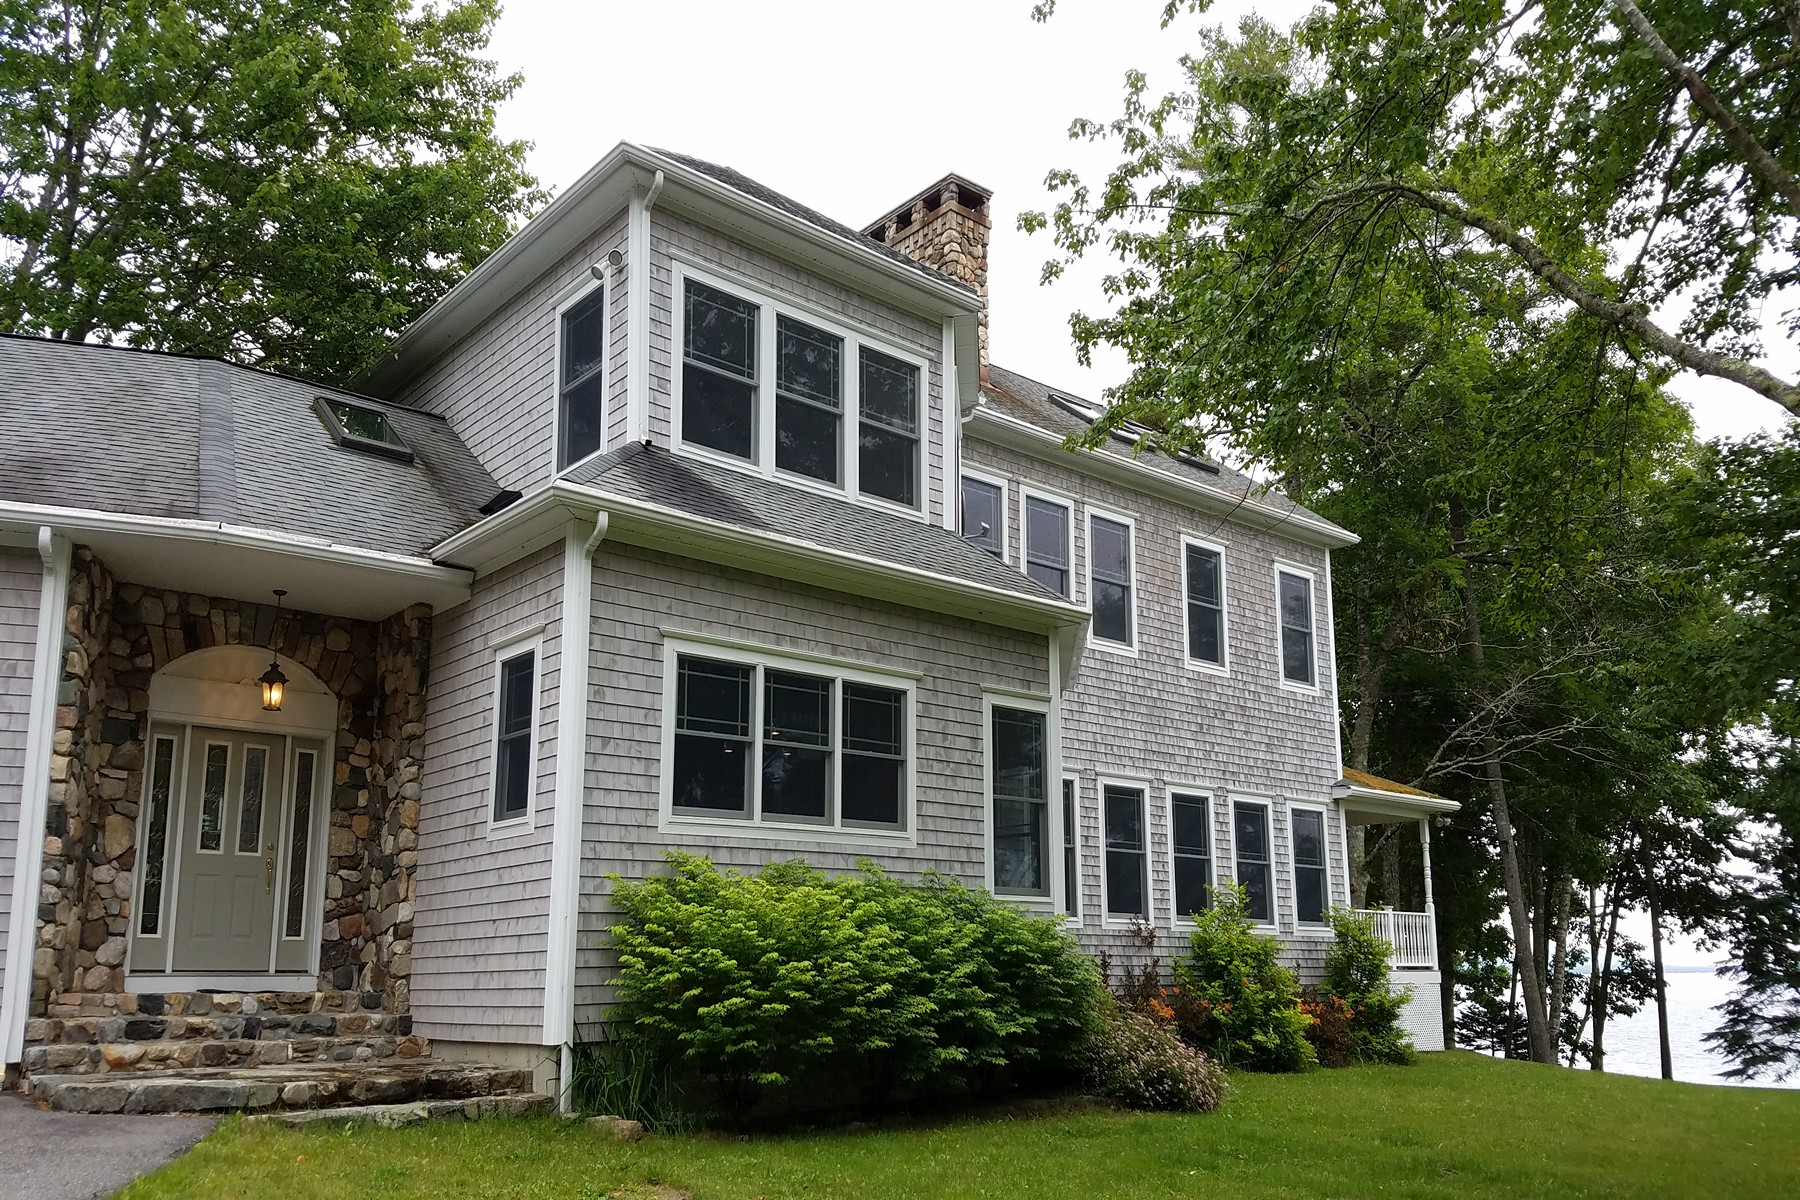 Single Family Home for Sale at Edgewater 34 Viking Trail Lane Surry, Maine, 04684 United States